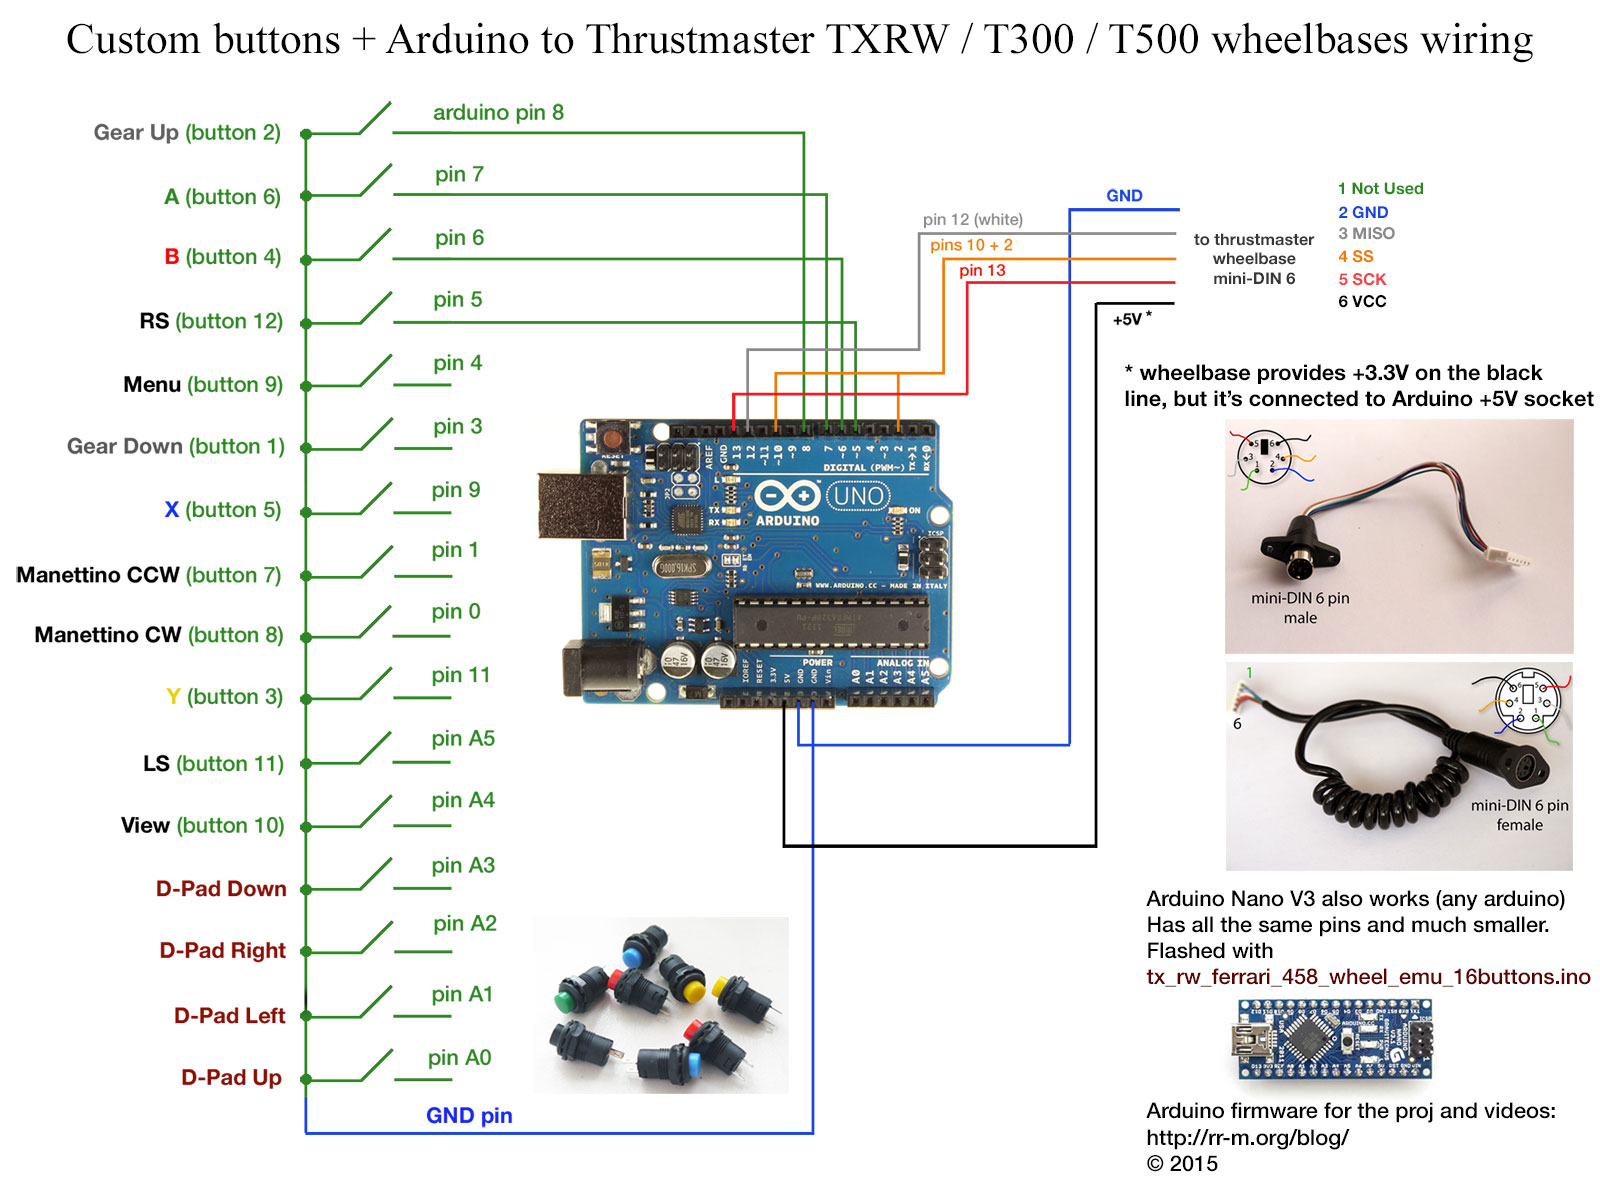 t300 wiring diagram jeep cj7 heater wiring diagram ge refrigerator arduino nano controlled buttons for thrustmaster wheelbases part arduino to thrustmaster wheelbase wiring 1600x1200 arduino nano